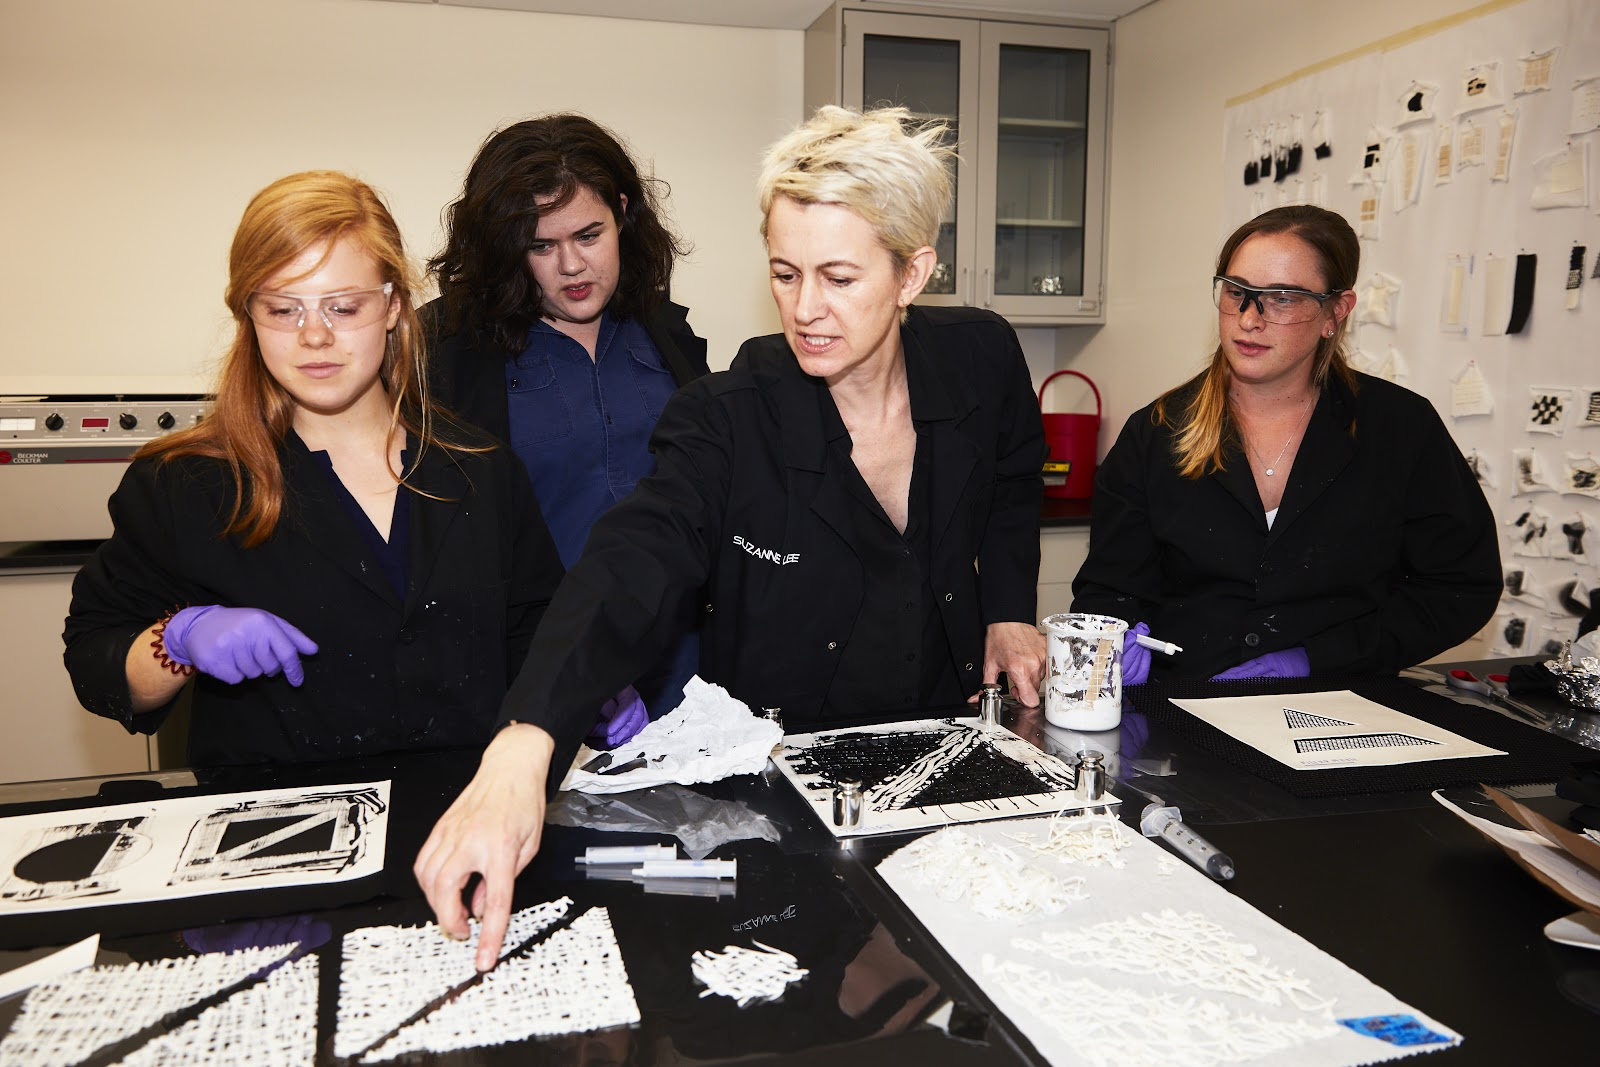 Modern Meadow's design team working on Zoa™ prototypes (from left to right): Callie Clayton, Amy Congdon, Suzanne Lee, Morgan Schneider. 2017. Credit: Modern Meadow.